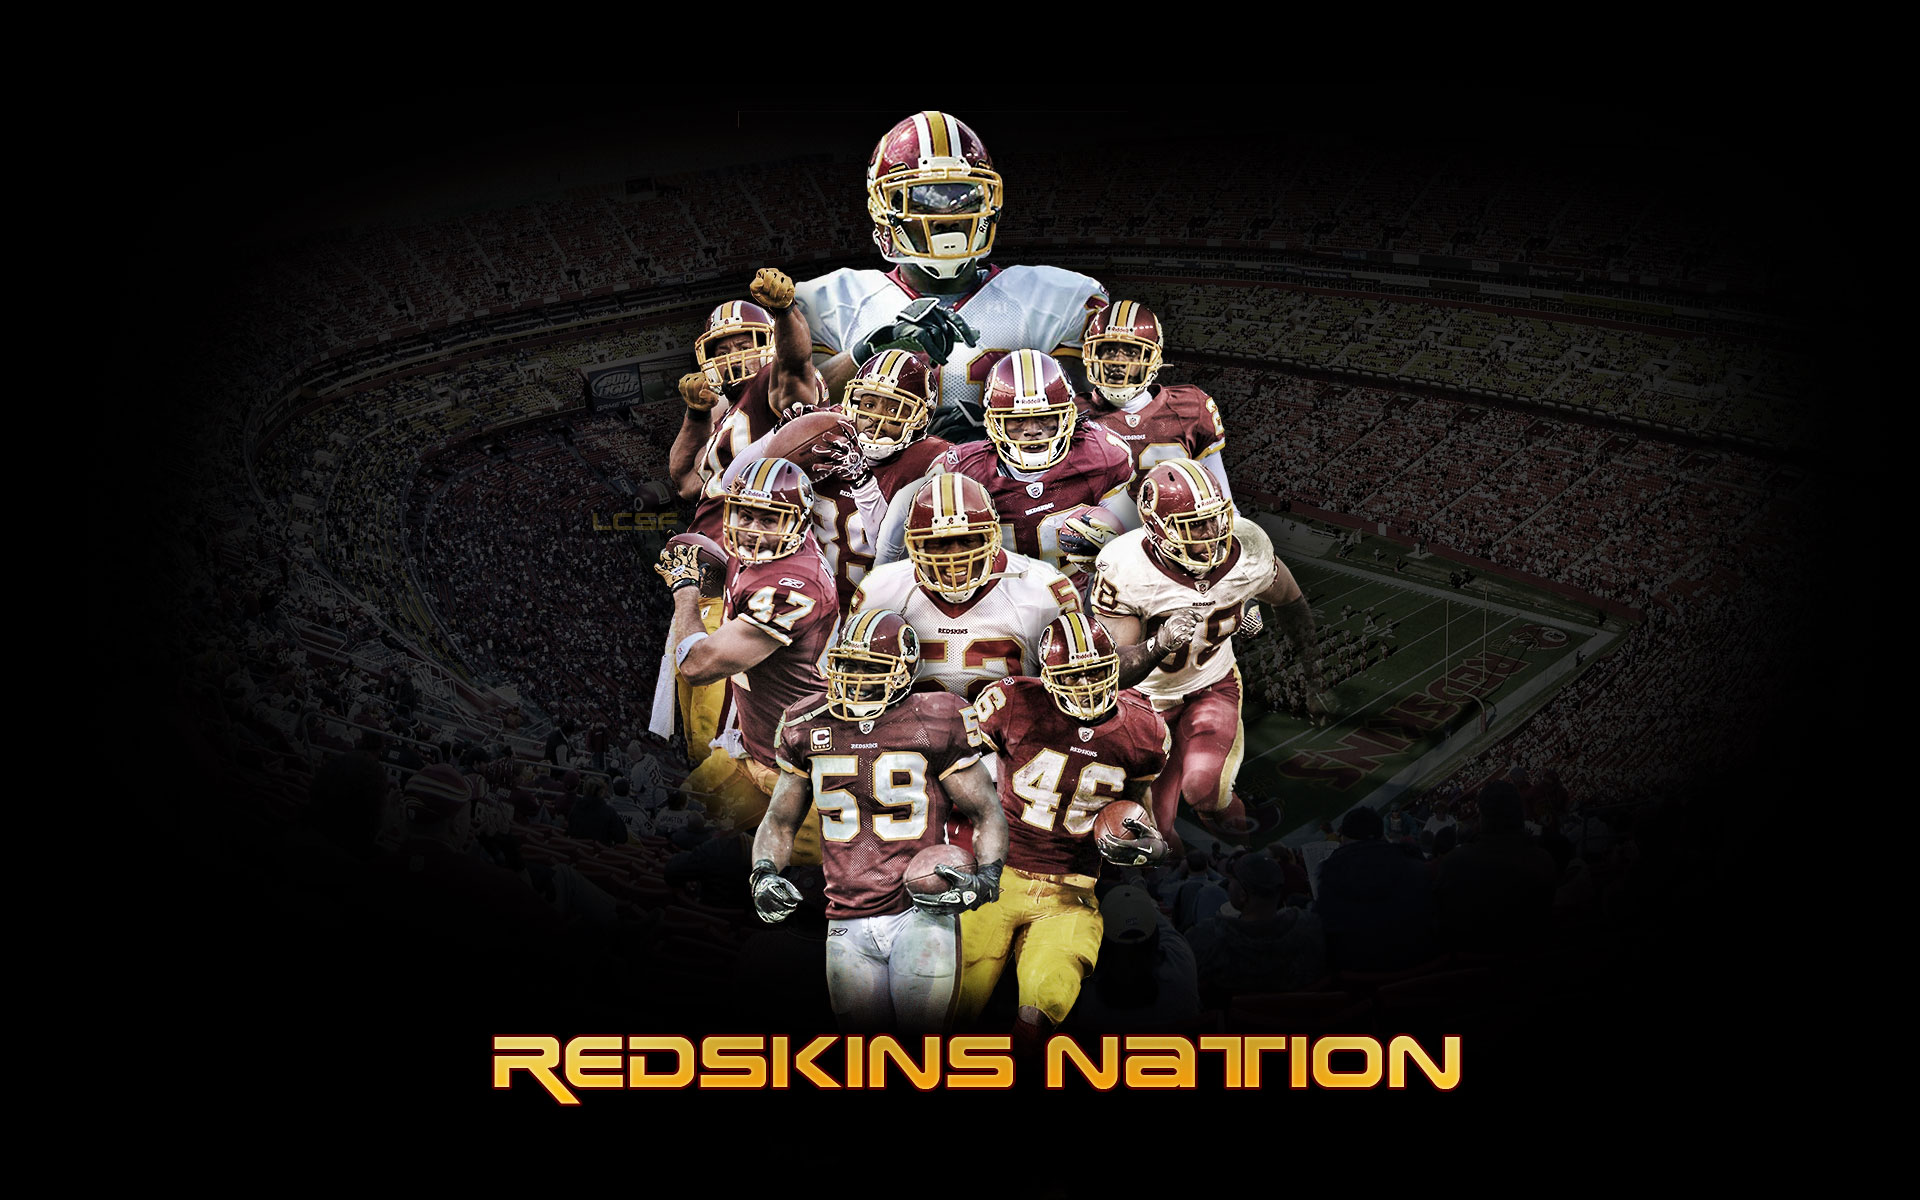 Redskins HD Background Wallpaper HD Wallpapers HD Backgrounds 1920x1200